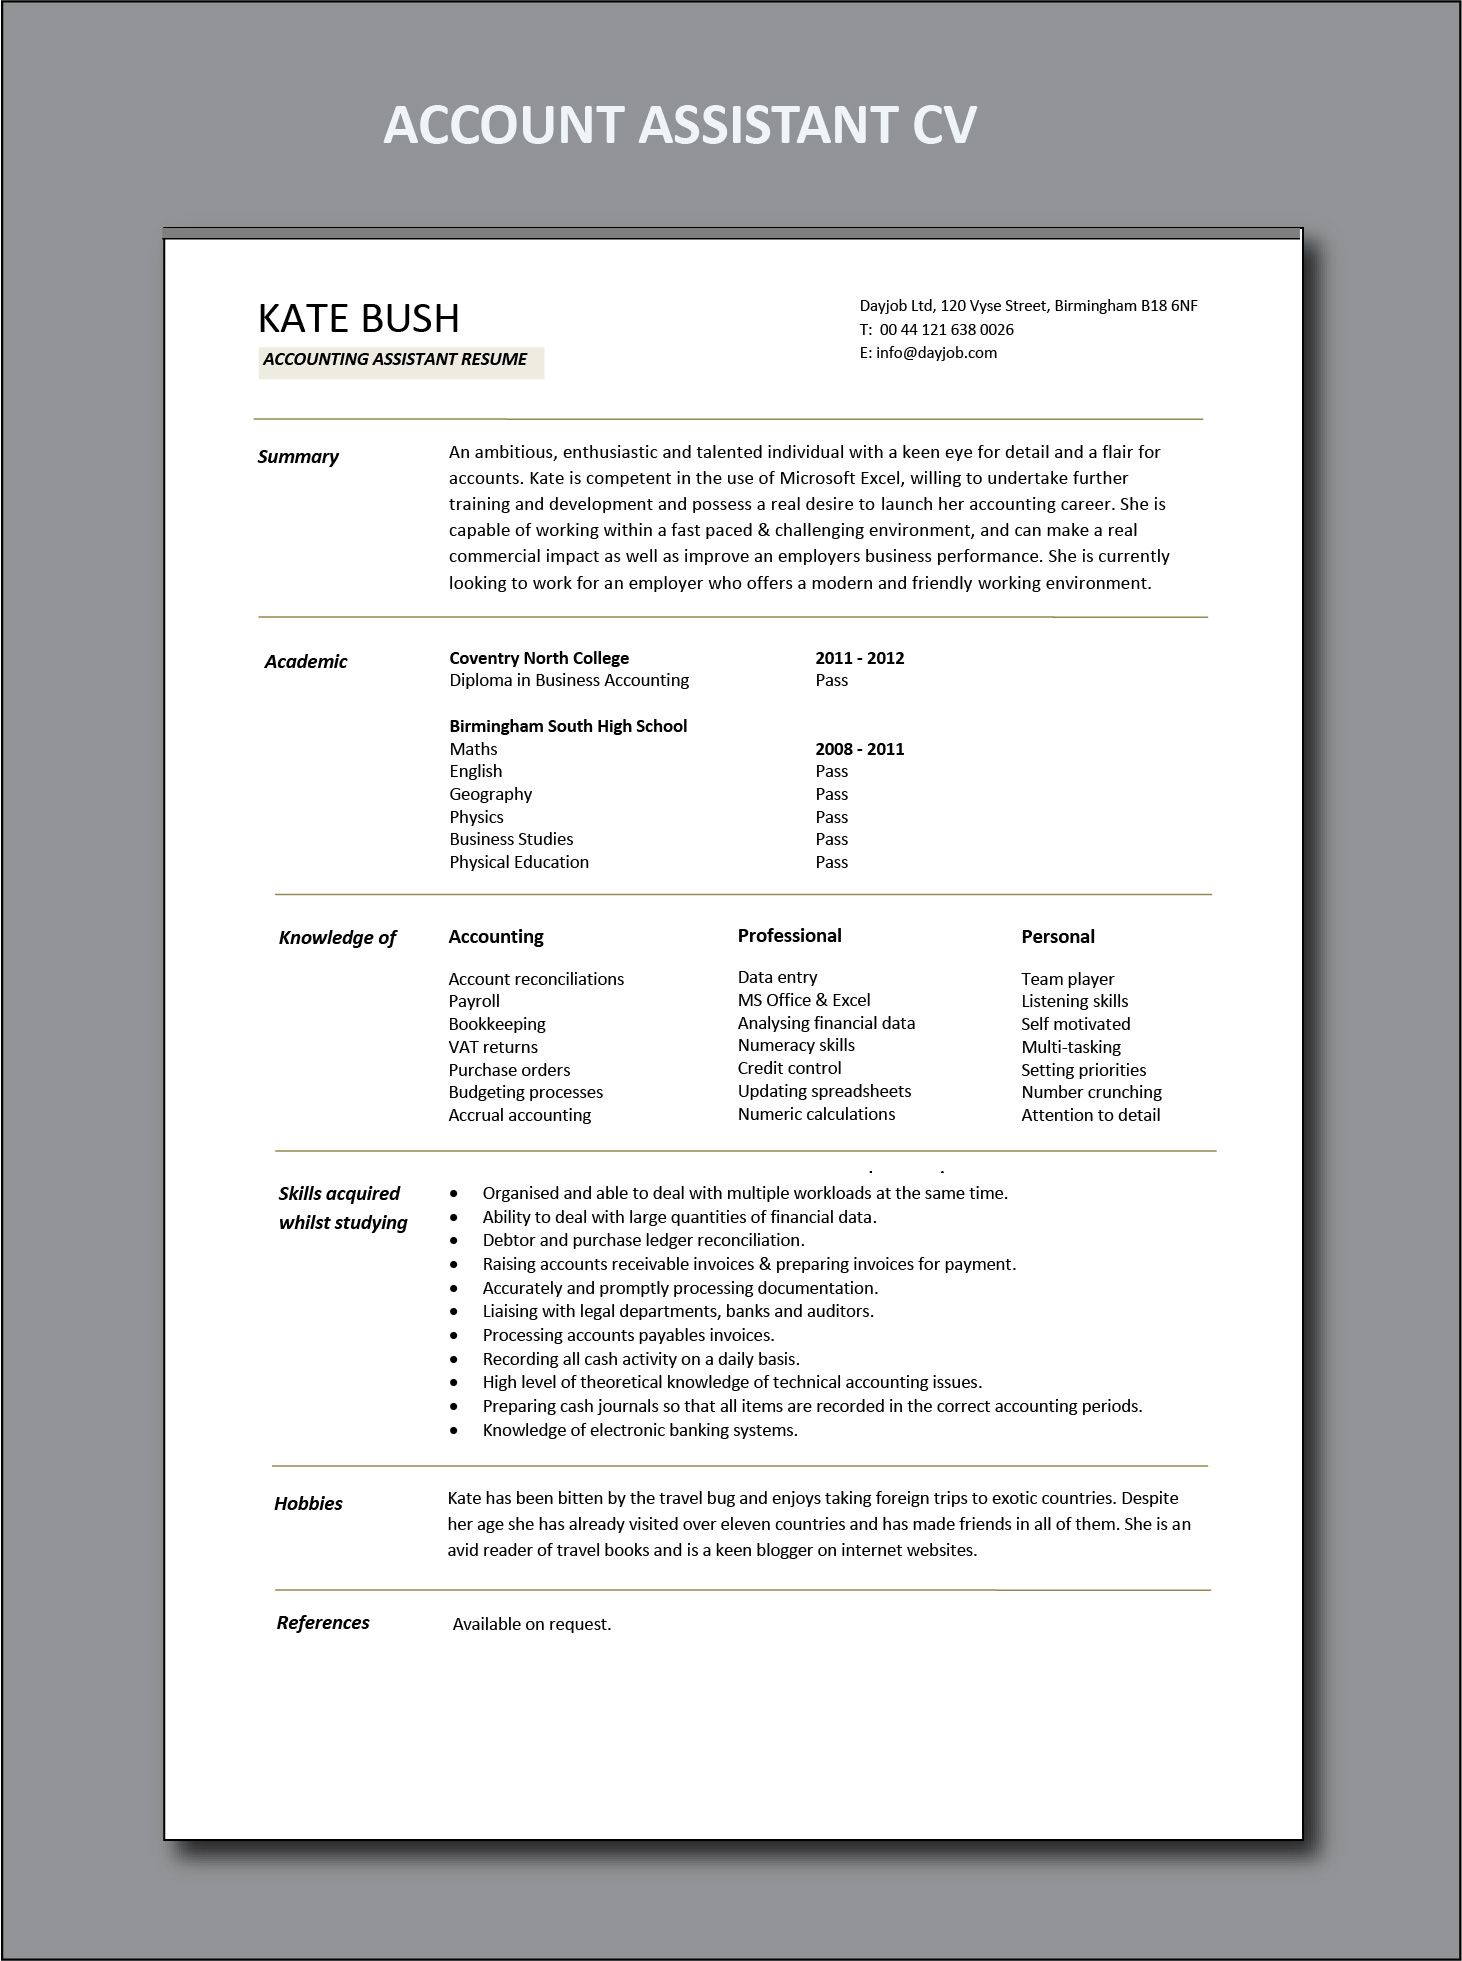 accounts assistant CV, Cashbook reconciliations, resume